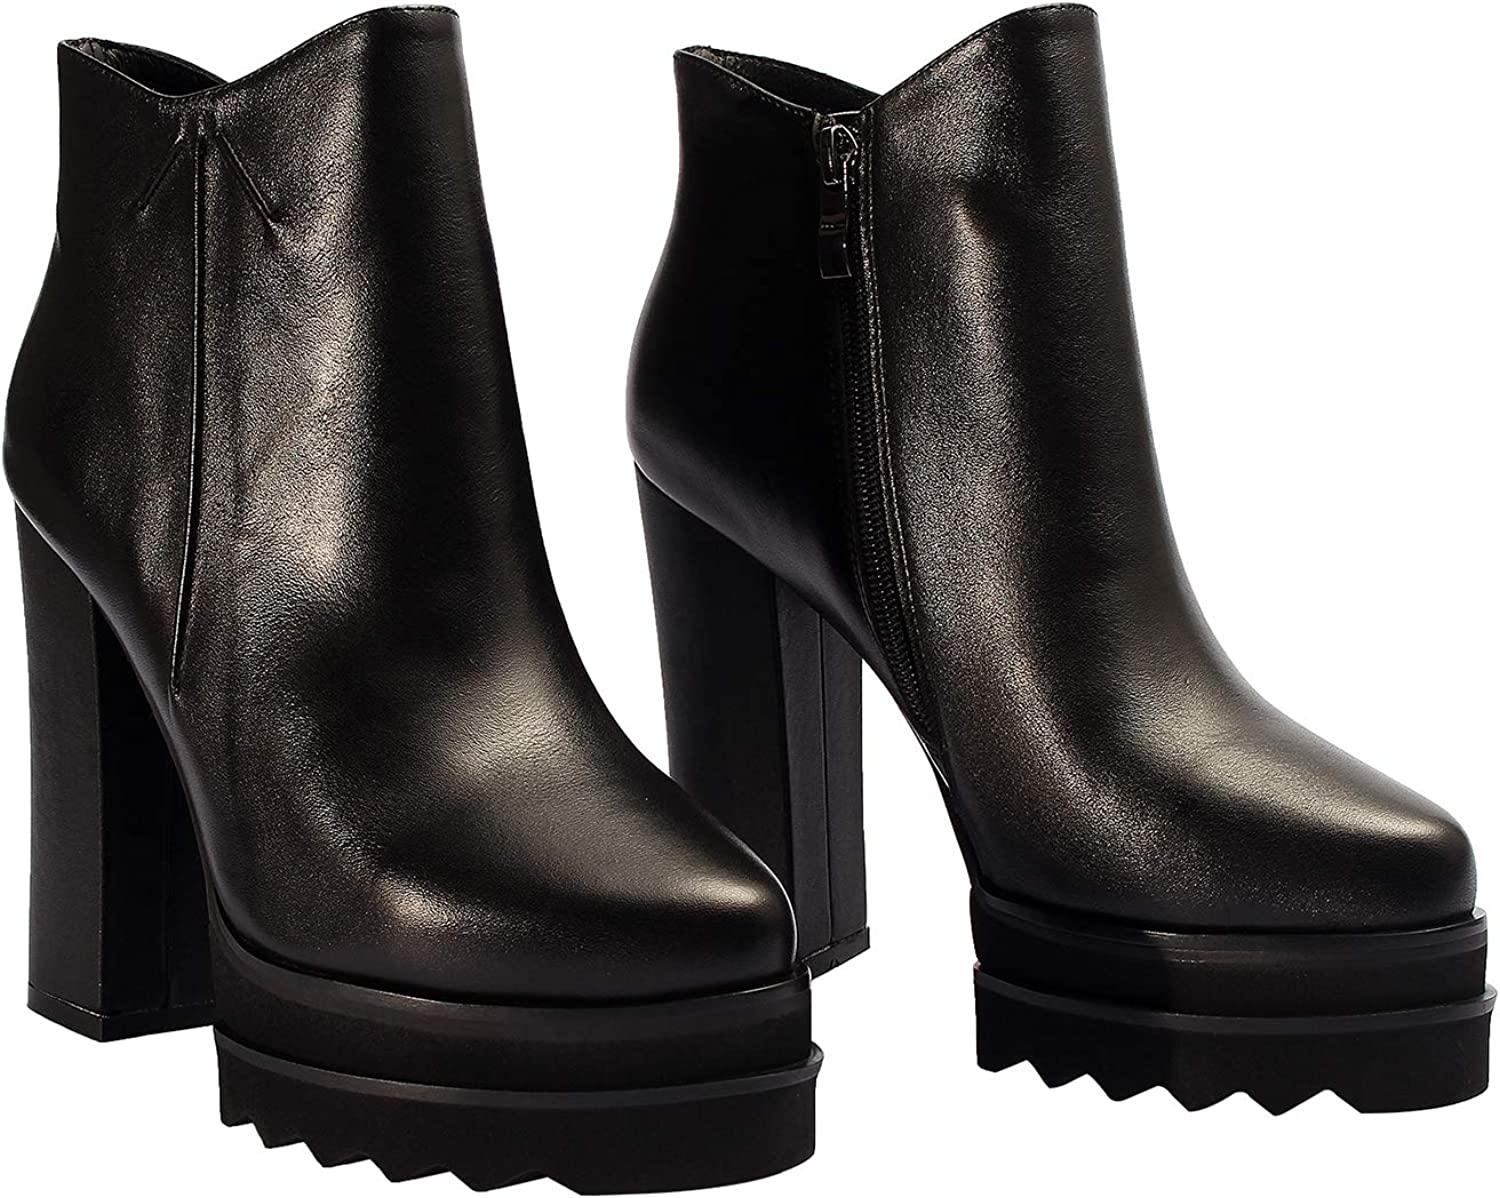 GiaoDeen Quantity limited Women's High Heel Platform Ankle Regular store Zip Leather Boots Side